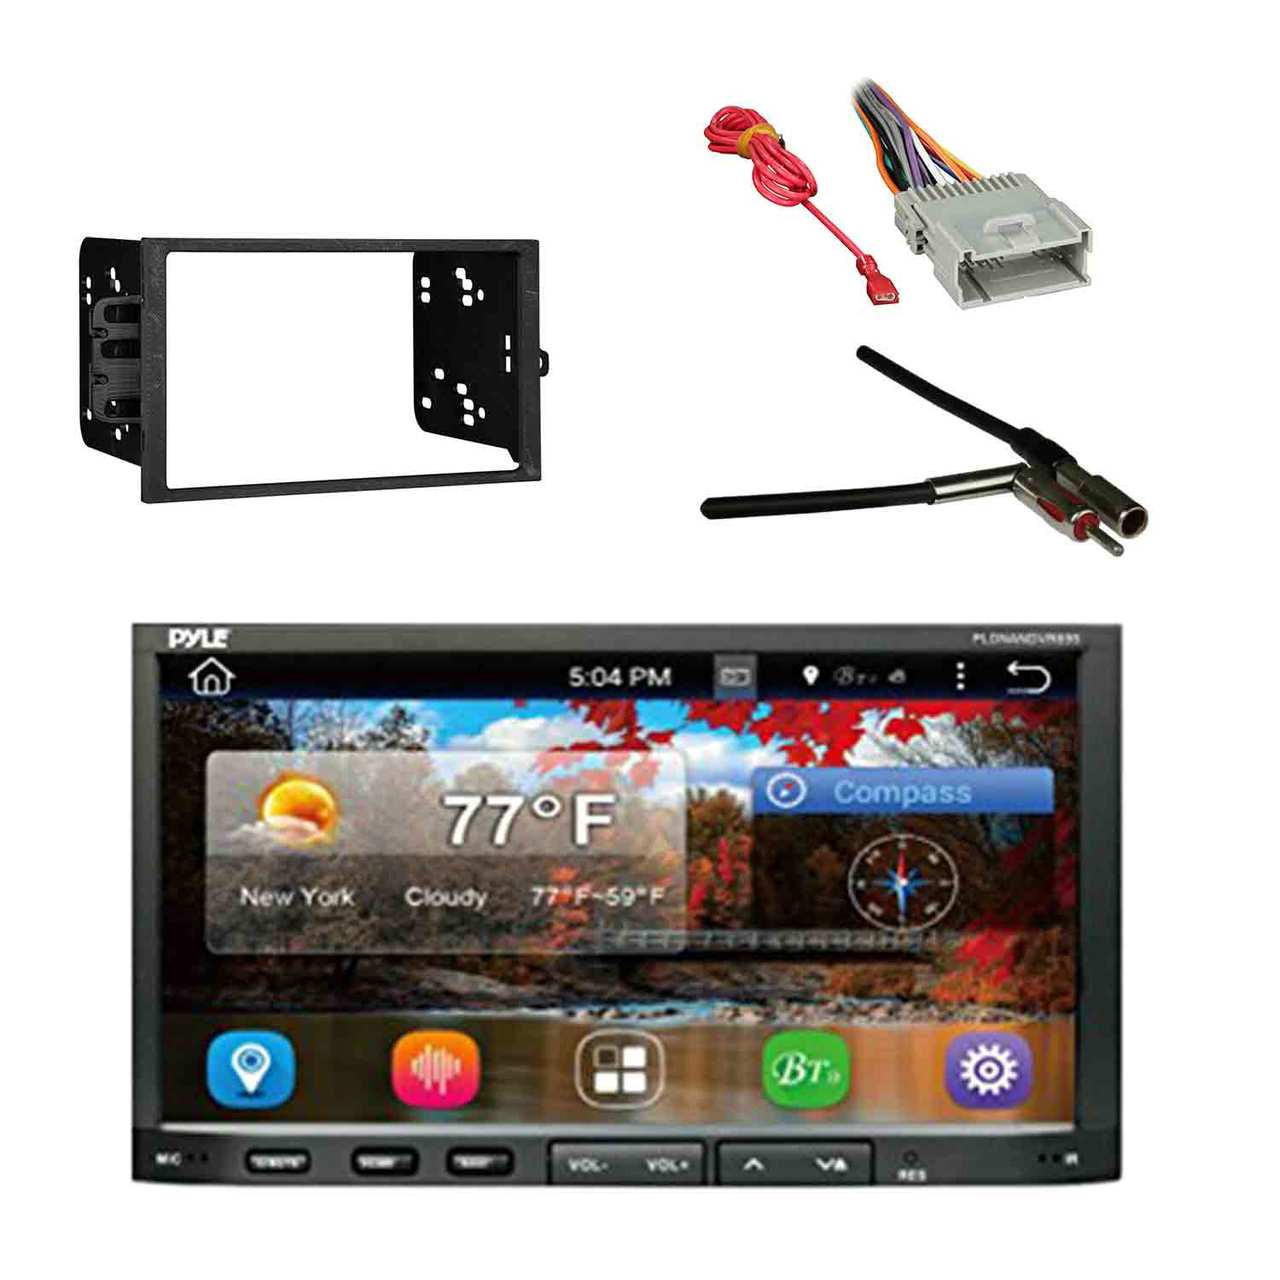 medium resolution of car stereo 2 din receiver with metra dash kit metra adapter pyle wiring harness s10